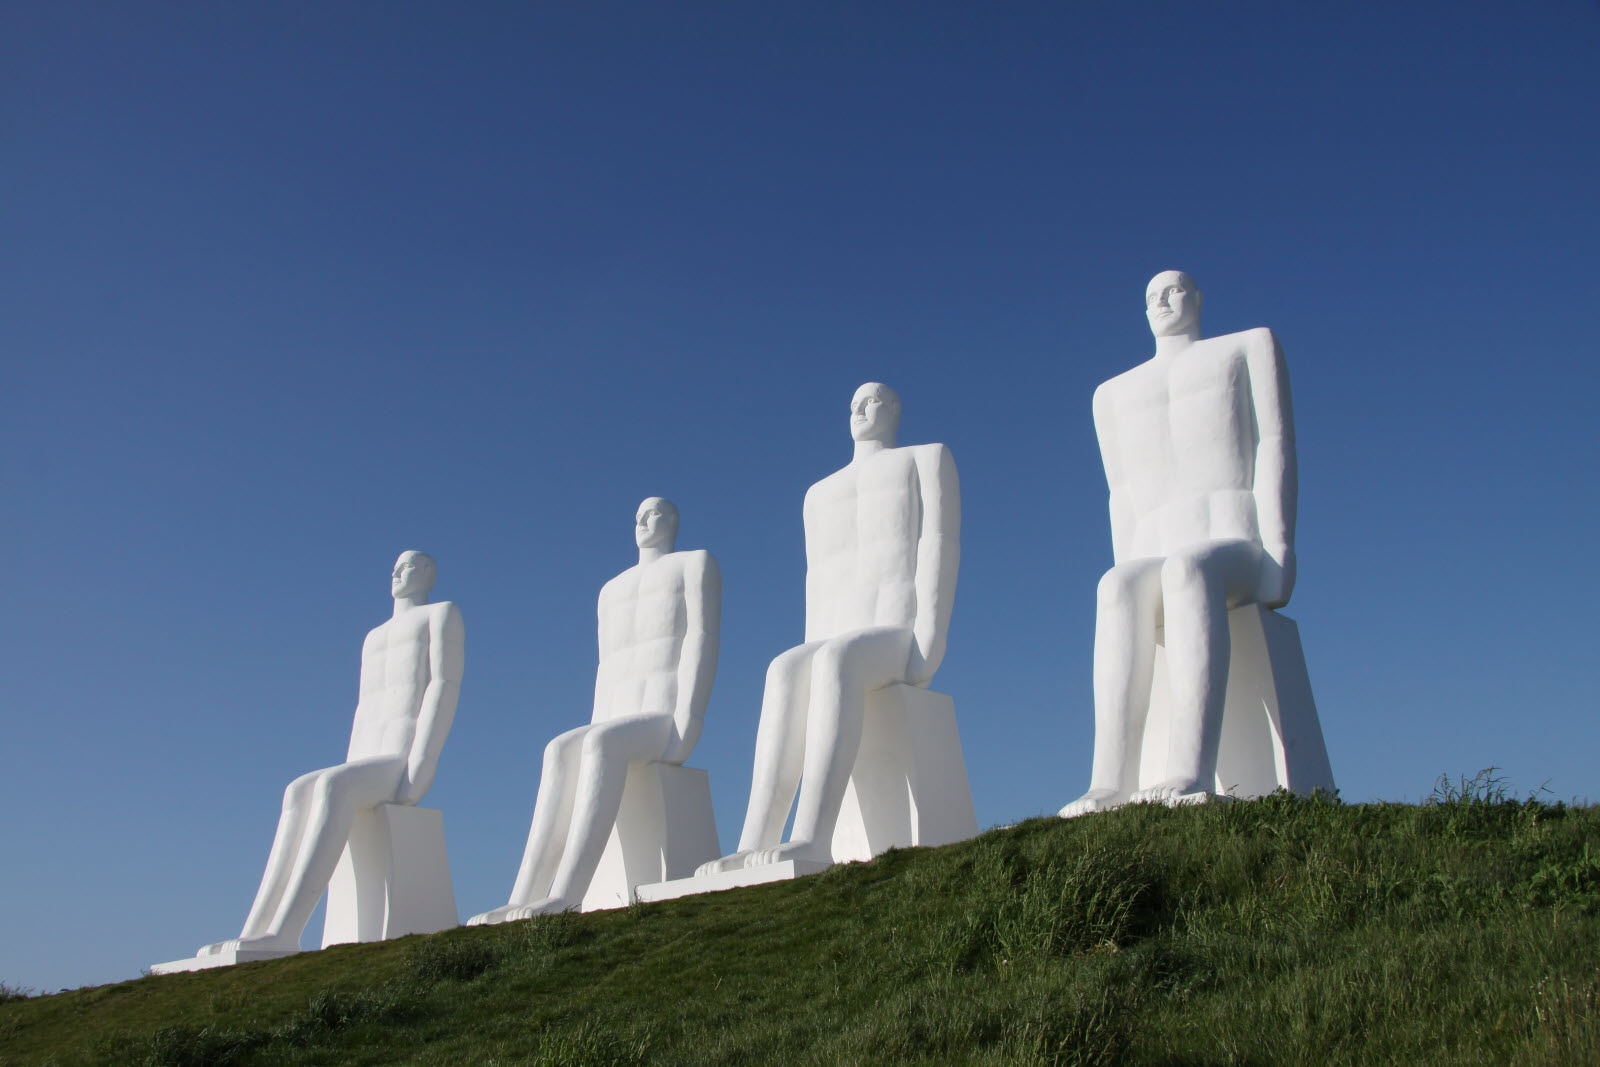 Sculptures By The Sea in Esbjerg